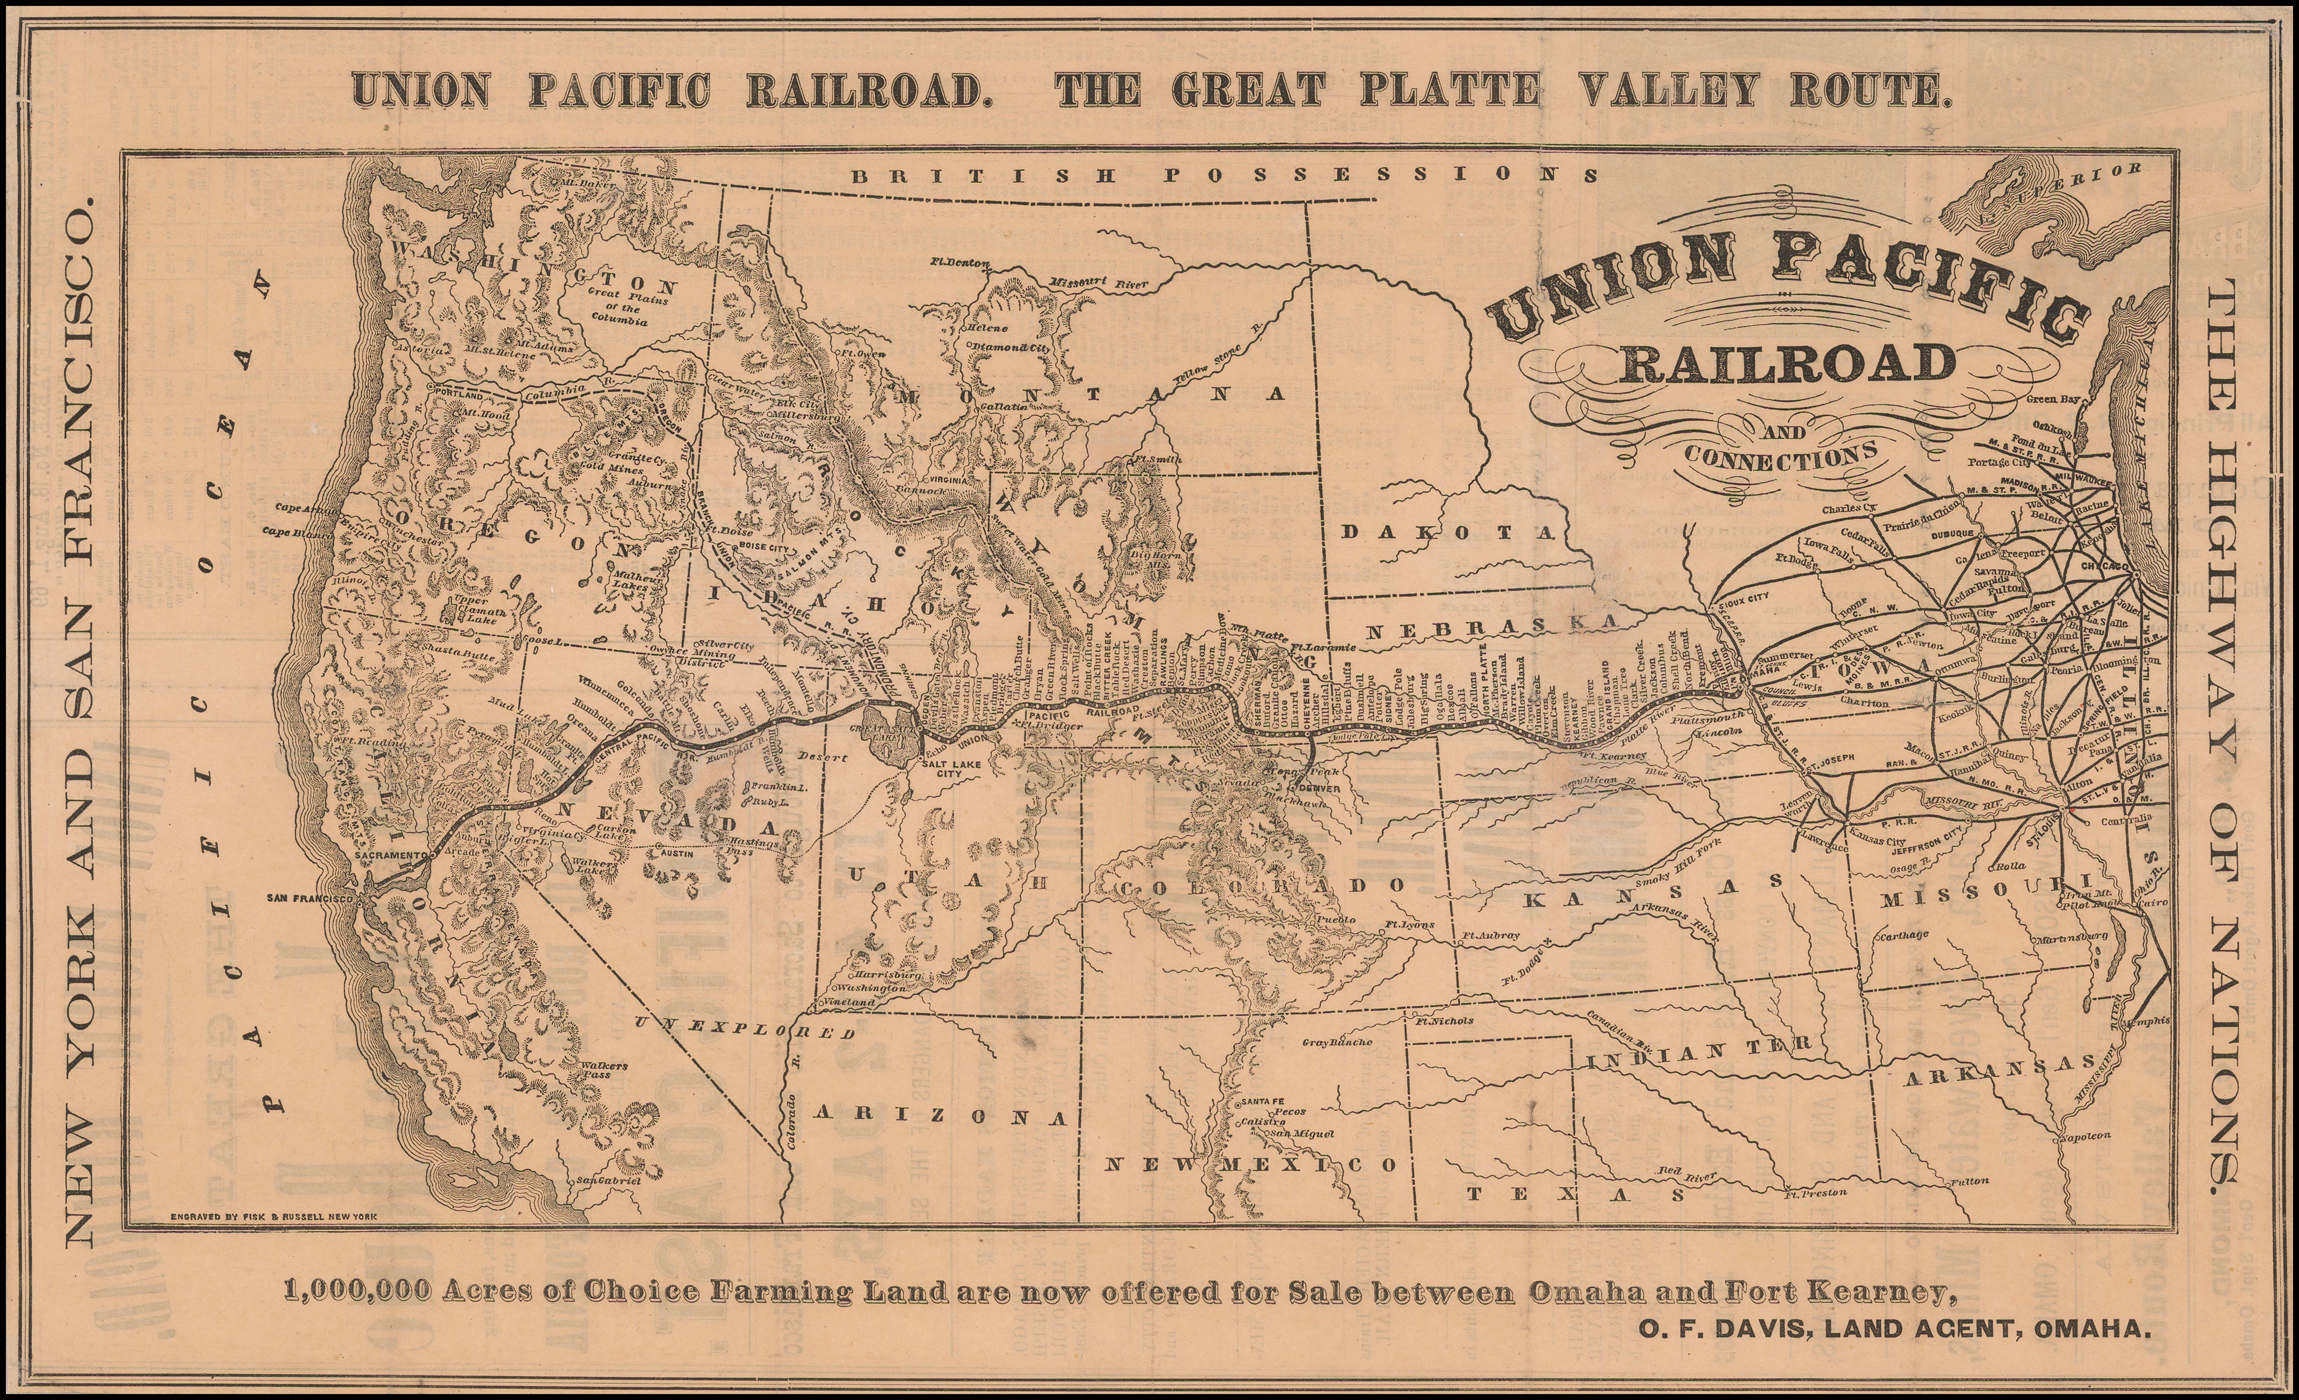 Union Pacific Railroad. The Great Platte Valley Route ... on union pacific business cars, union pacific idaho map, union pacific service map, rio grande railroad map utah, map of utah, union pacific rail map, union pacific train routes, gold spike utah, union pacific passenger trains, usgs map utah, union pacific dome car, union pacific track map, union pacific overland, union pacific network map, union pacific salt lake city, union pacific railway map, union pacific elko nv, union pacific nebraska, union pacific dining car menus, union pacific subdivisions map,